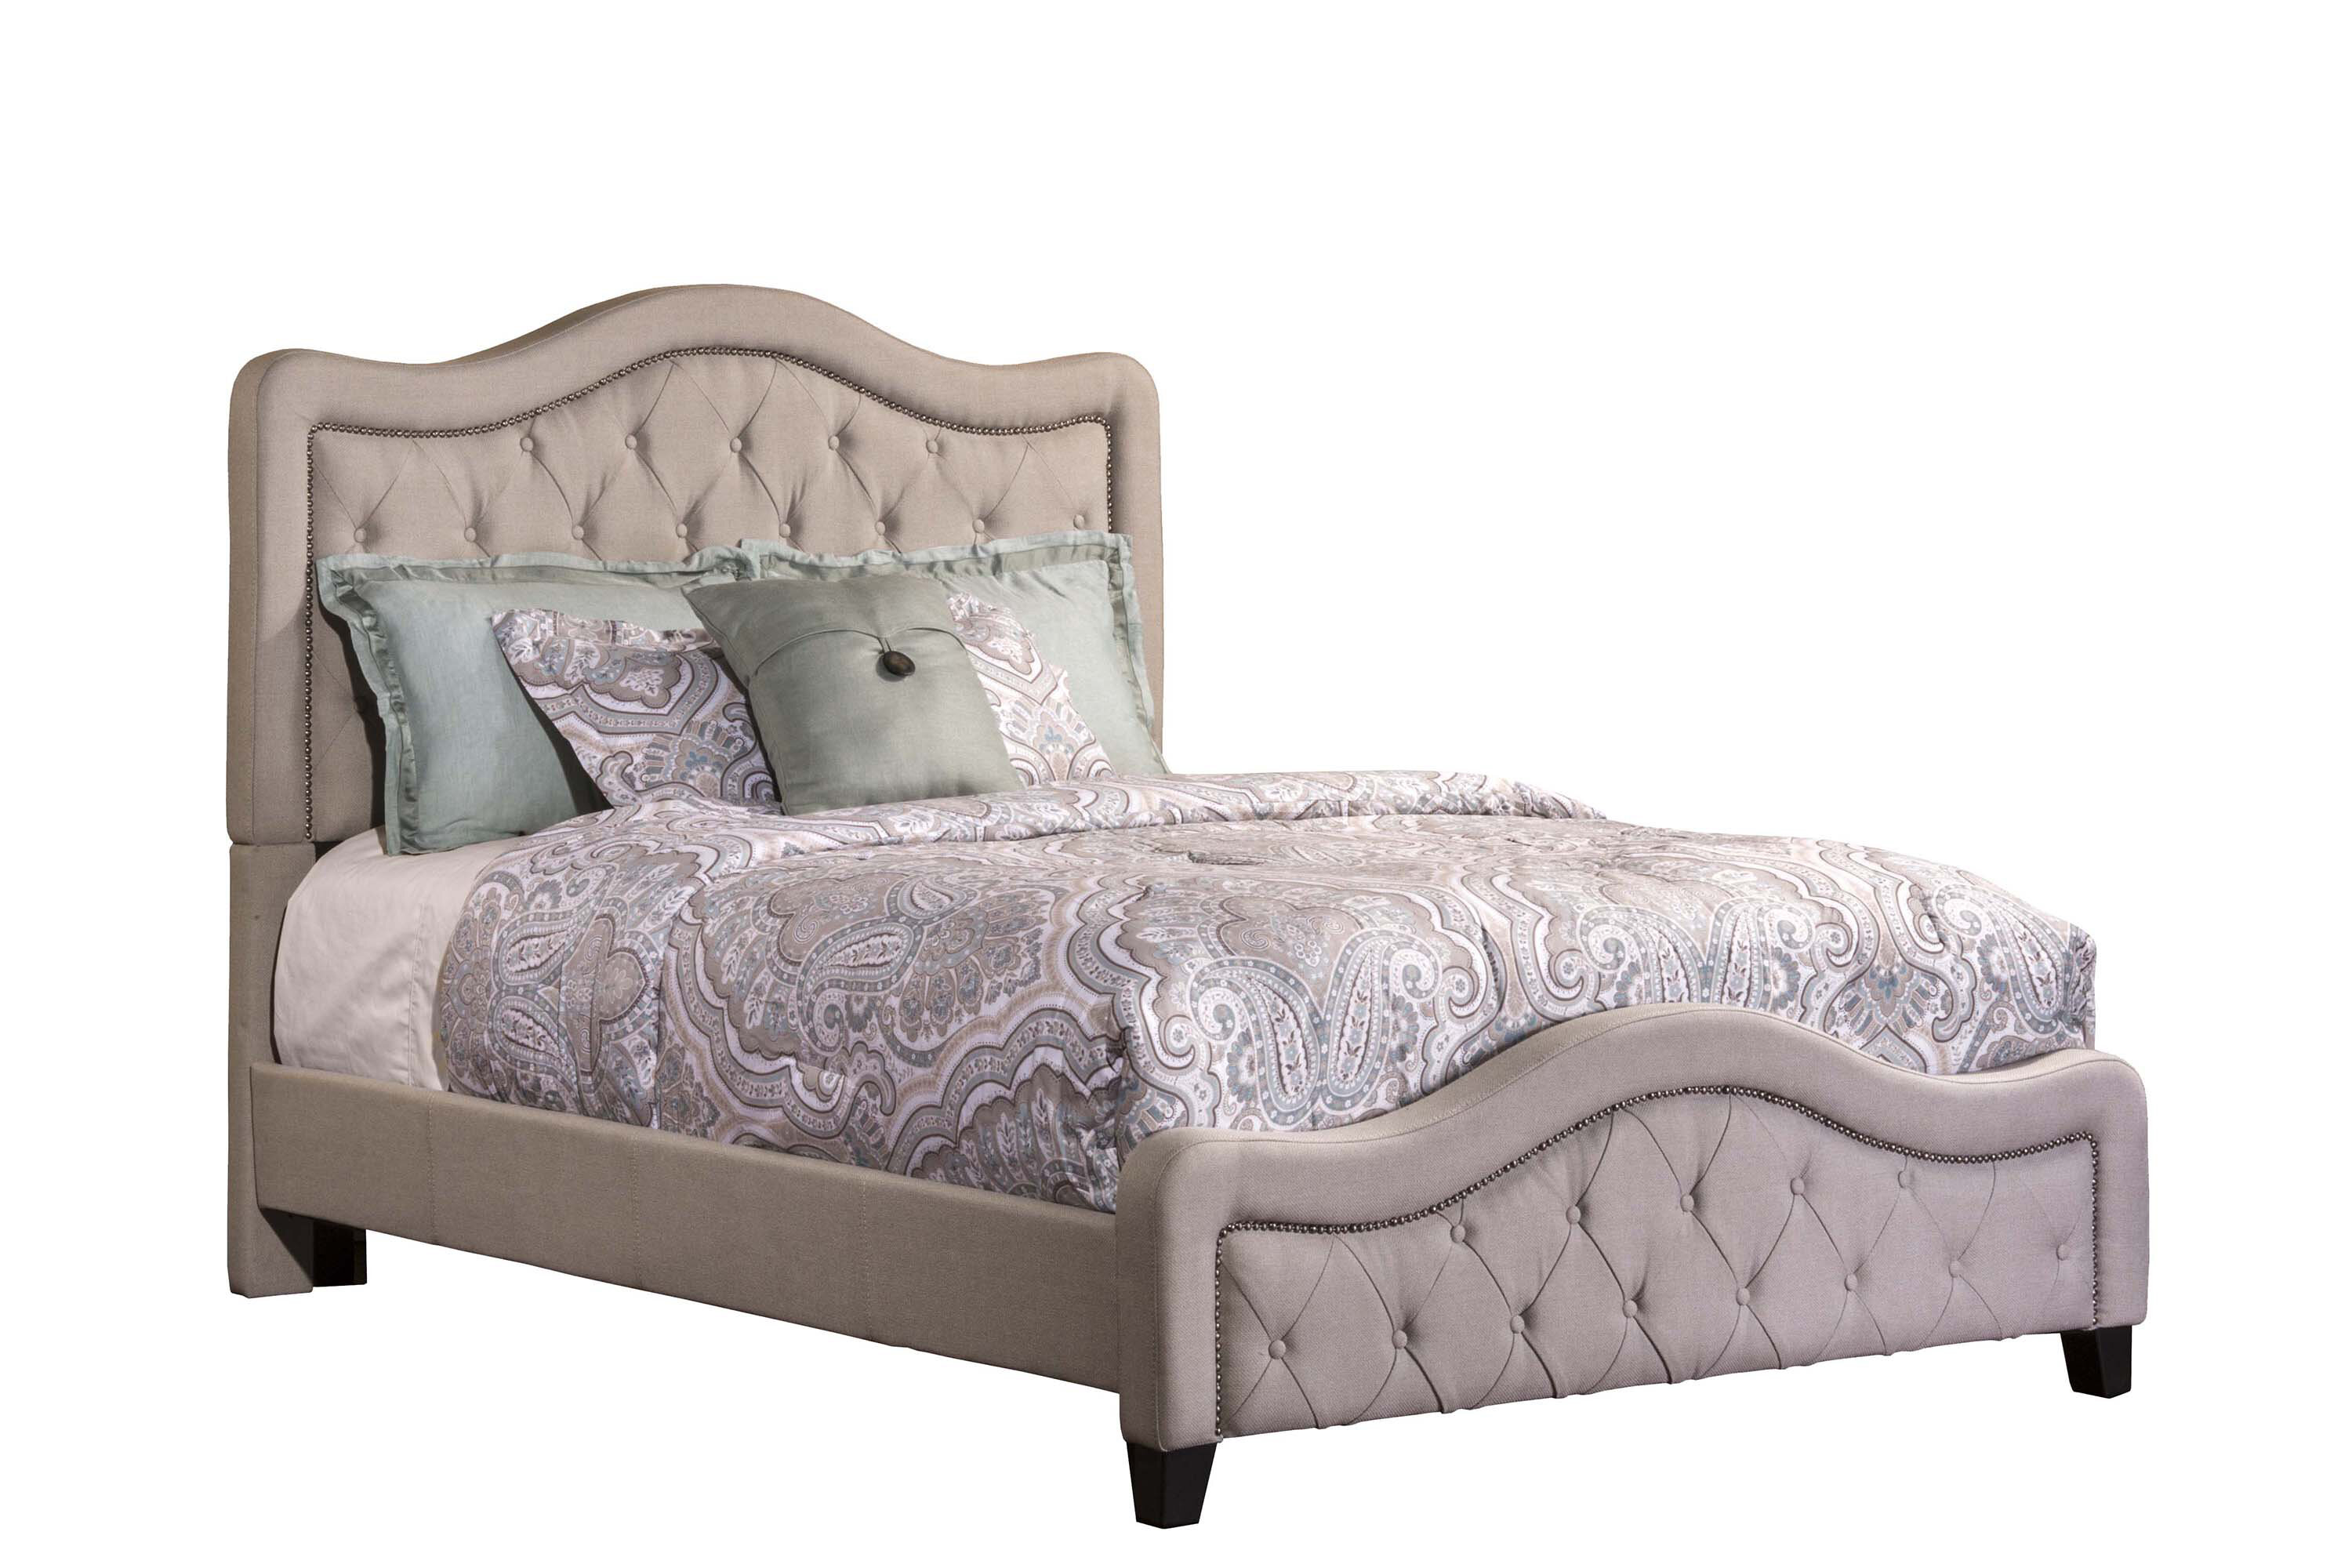 Alcott Hill Amoll Upholstered Standard Bed Wayfair